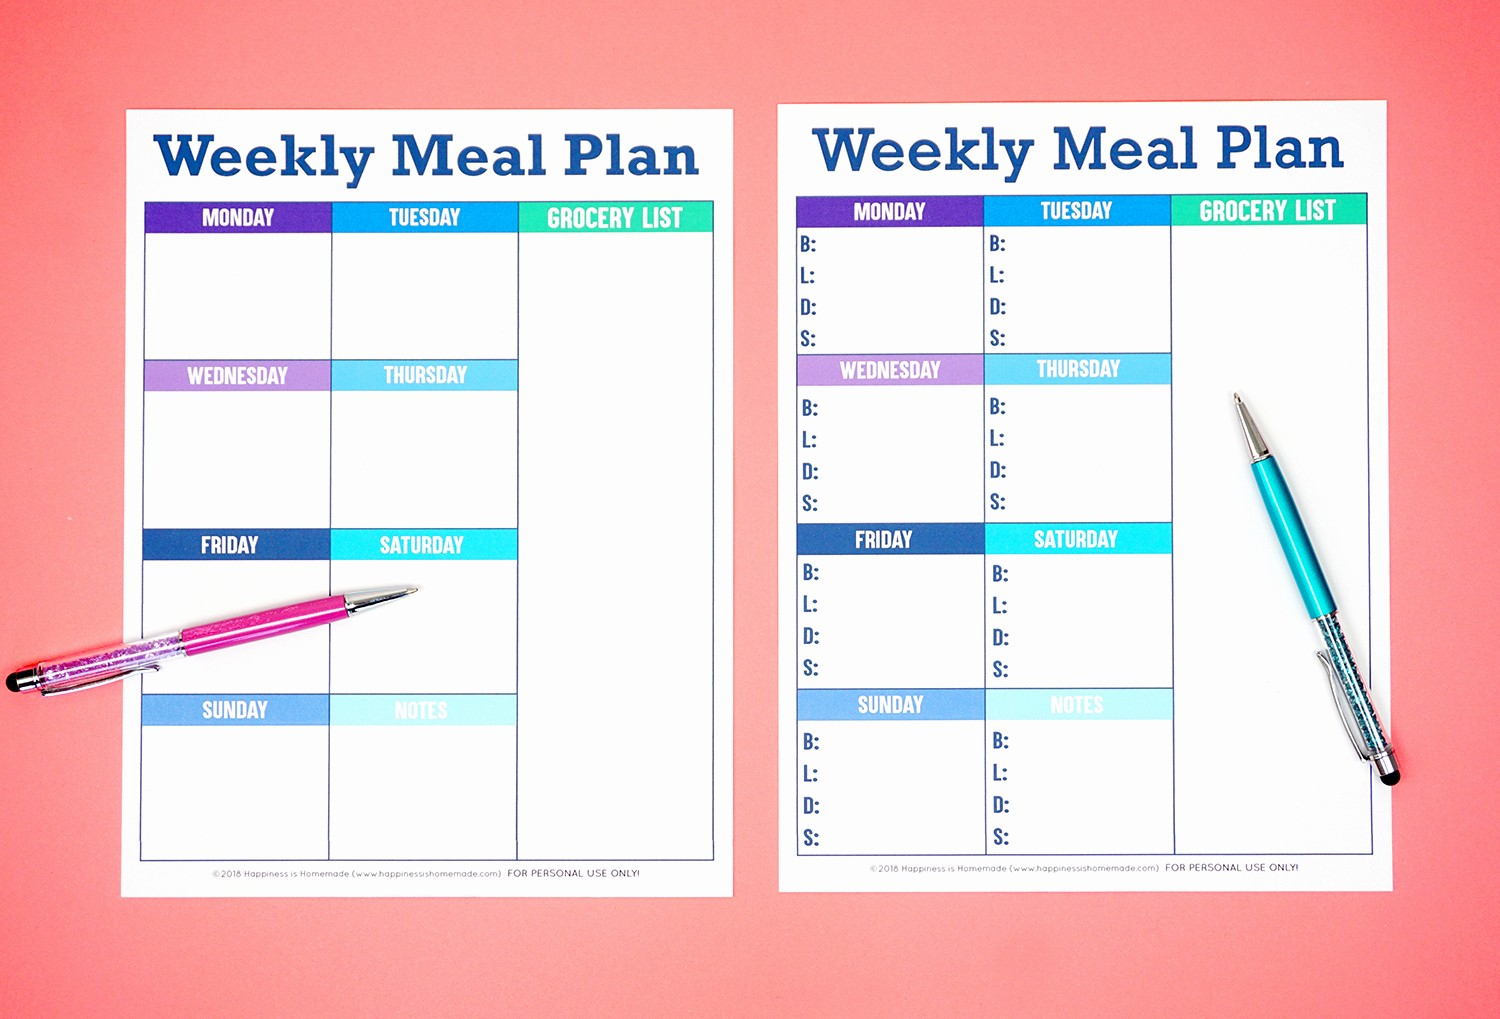 Weekly Meal Planner Templates Free Awesome Printable Weekly Meal Planner Template Happiness is Homemade